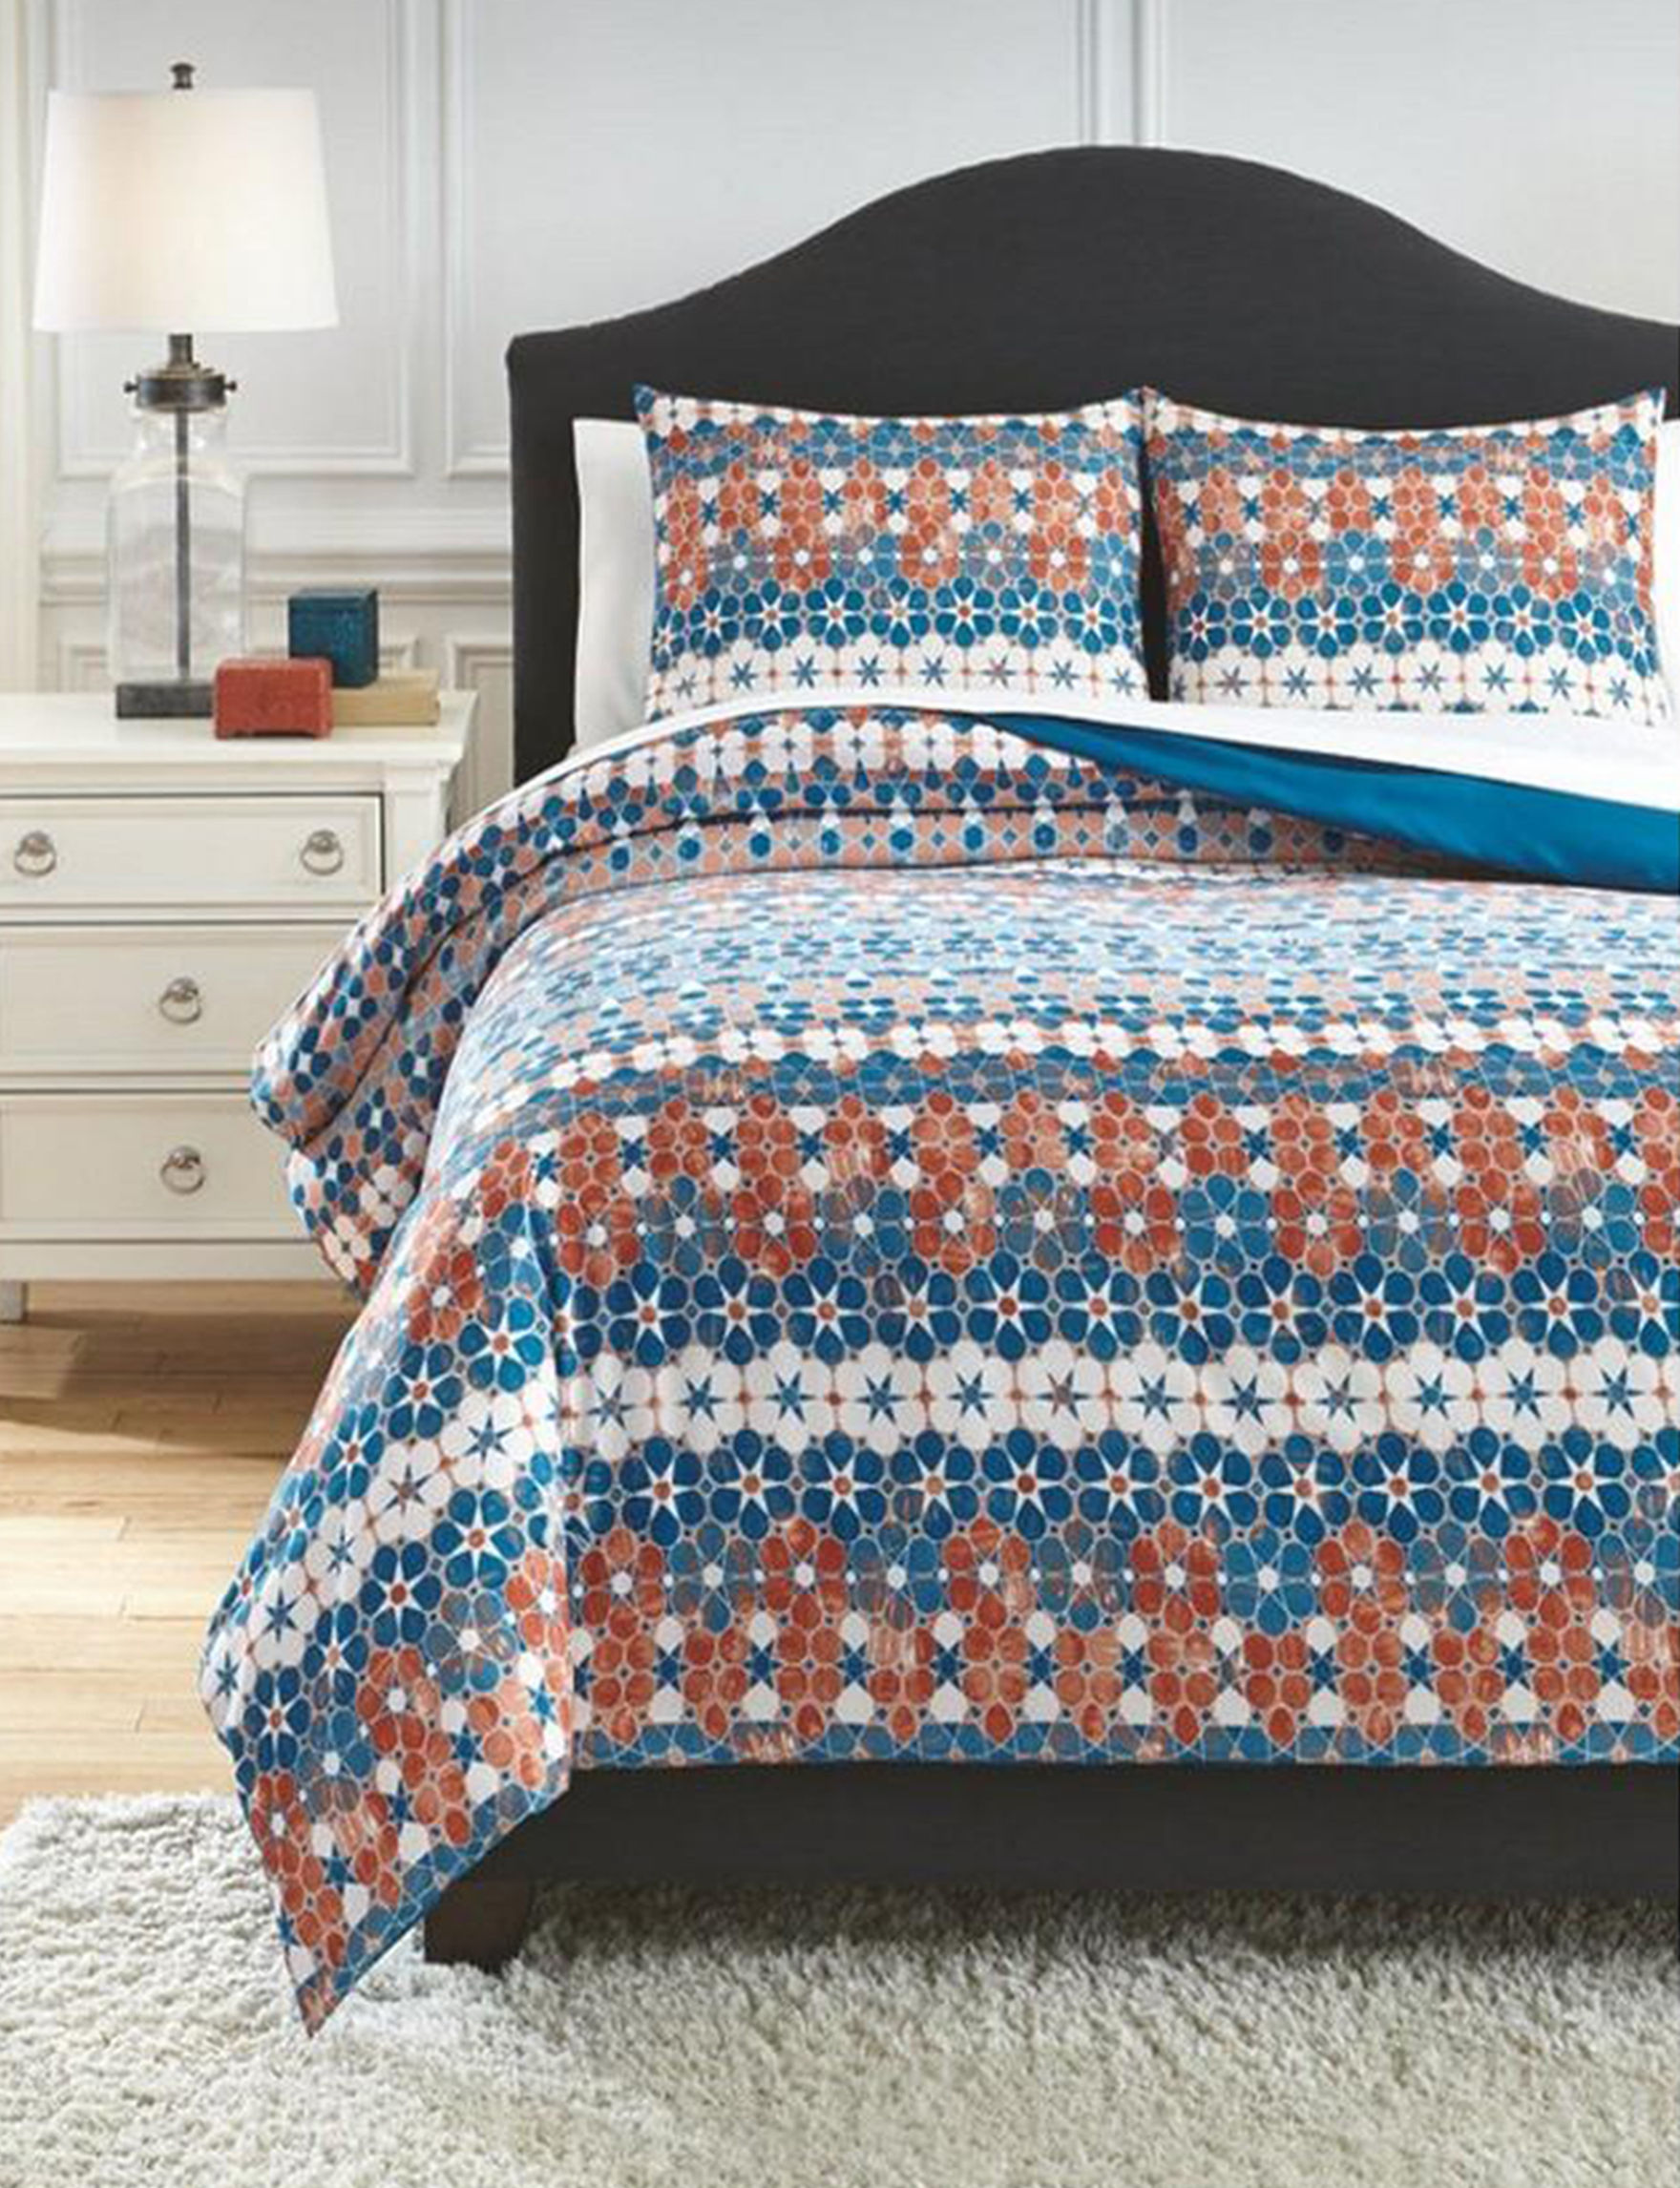 VCNY Home Blue Multi Comforters & Comforter Sets